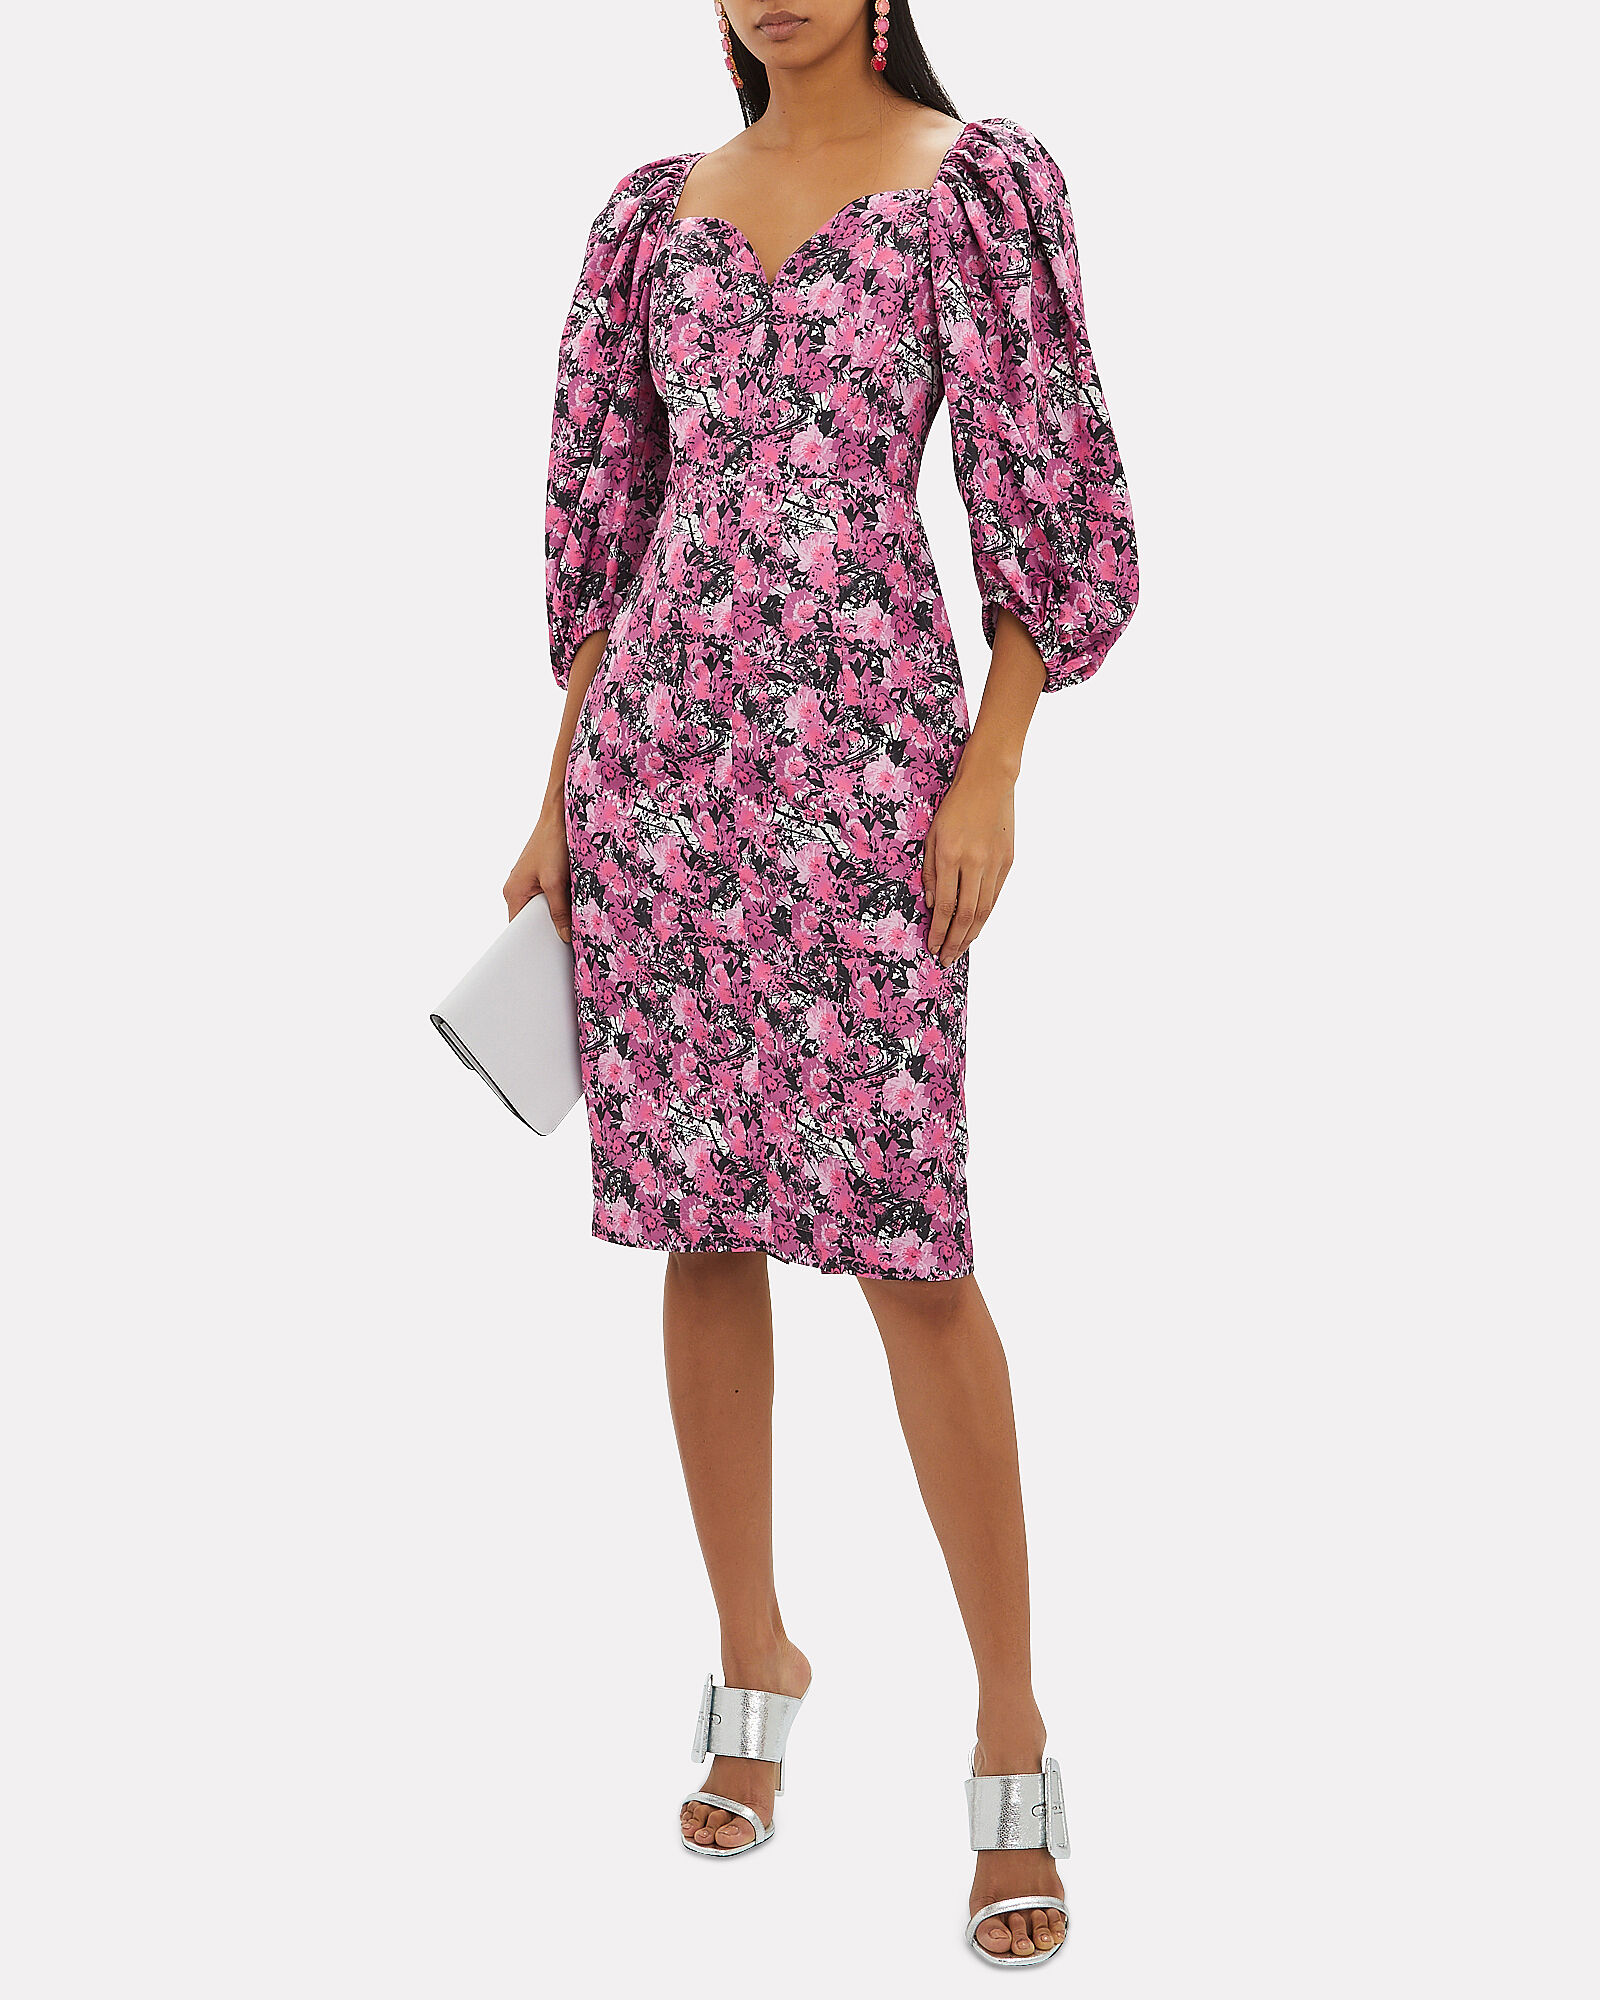 Irina Puff Sleeve Floral Dress, MAUVE/FLORAL, hi-res